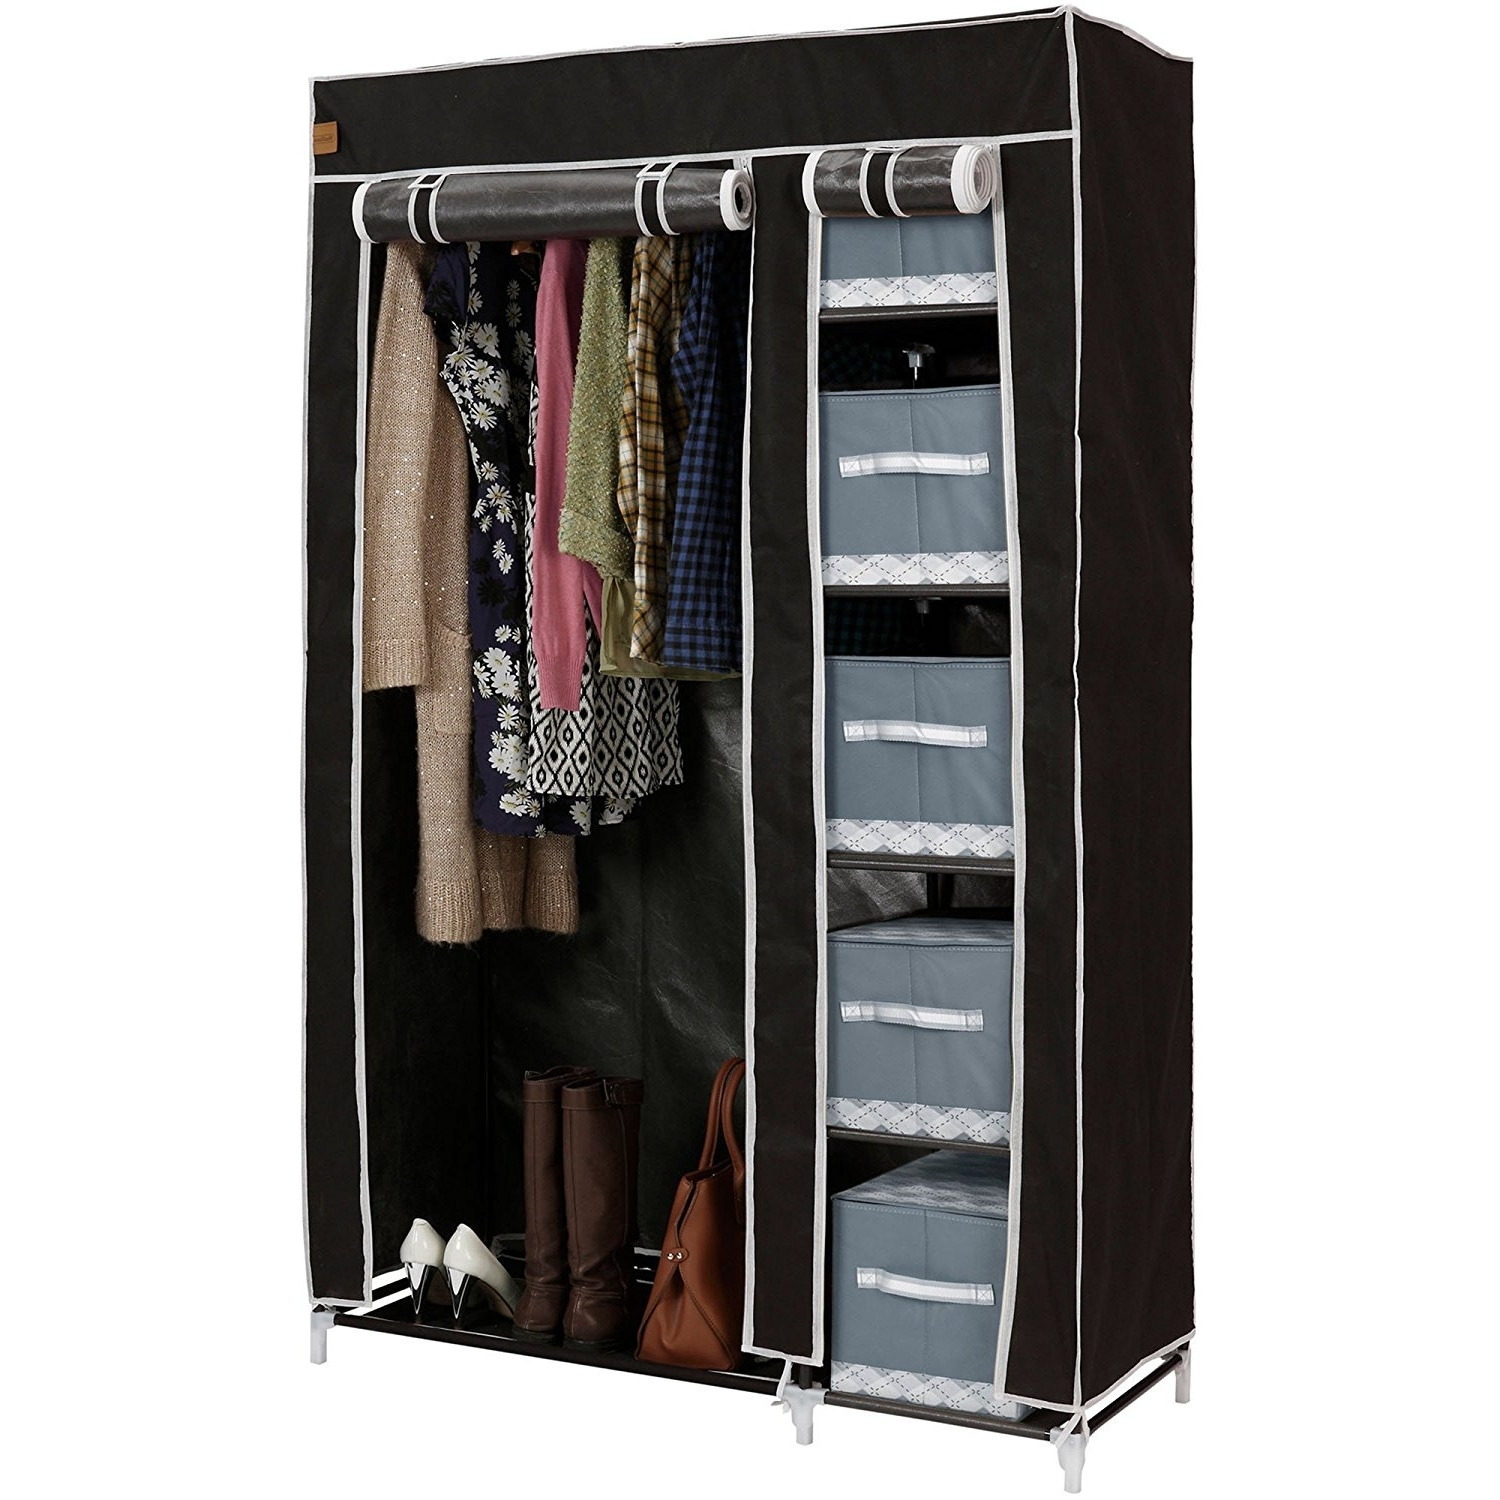 Vonhaus Double Canvas Effect Wardrobe – Clothes Storage Cupboard In Well Known Double Canvas Wardrobes Rail Clothes Storage (View 13 of 15)